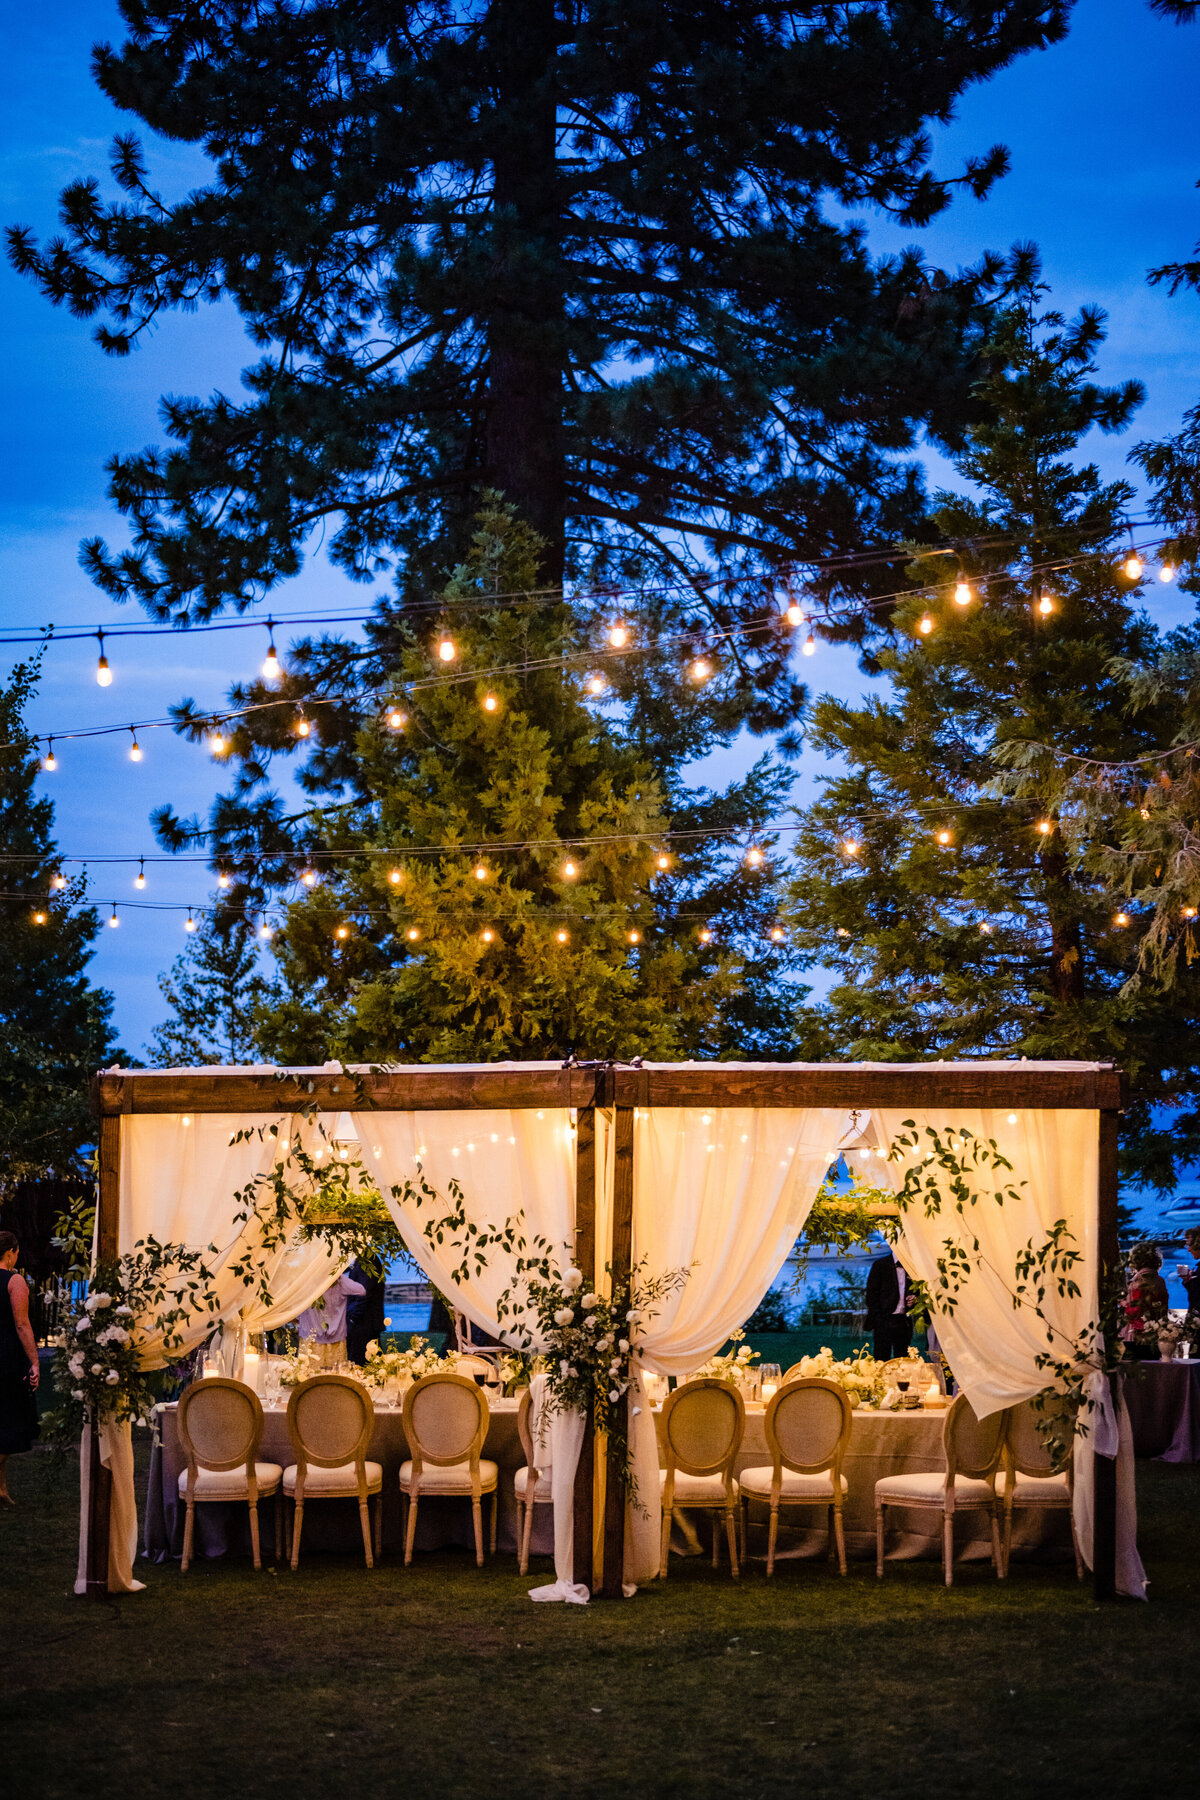 Elopement Lake Tahoe Sikora Events West Shore Cafe Wedding Lake Tahoe Wedding Lake Tahoe Wedding Planner